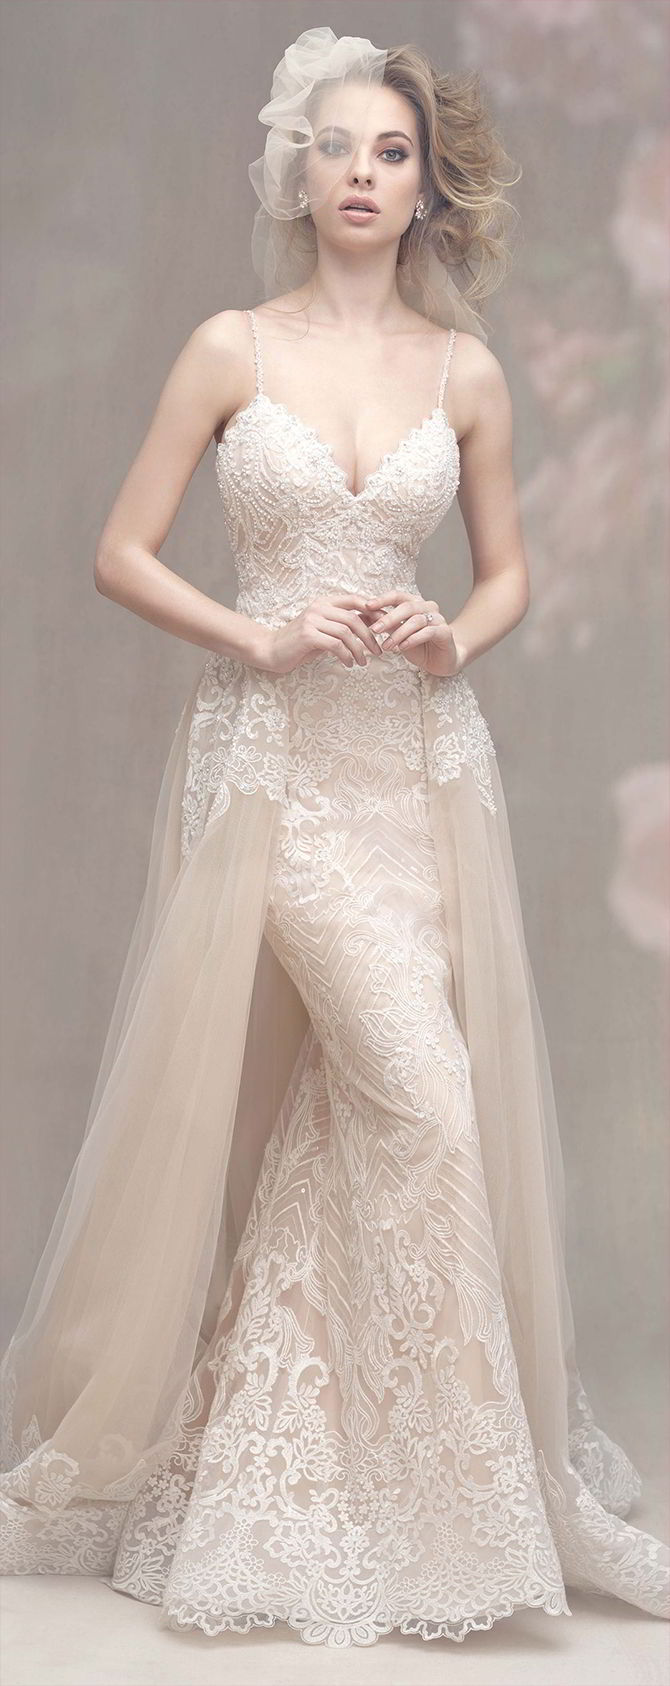 Allure Couture Fall 2017 Wedding Dresses - World of Bridal